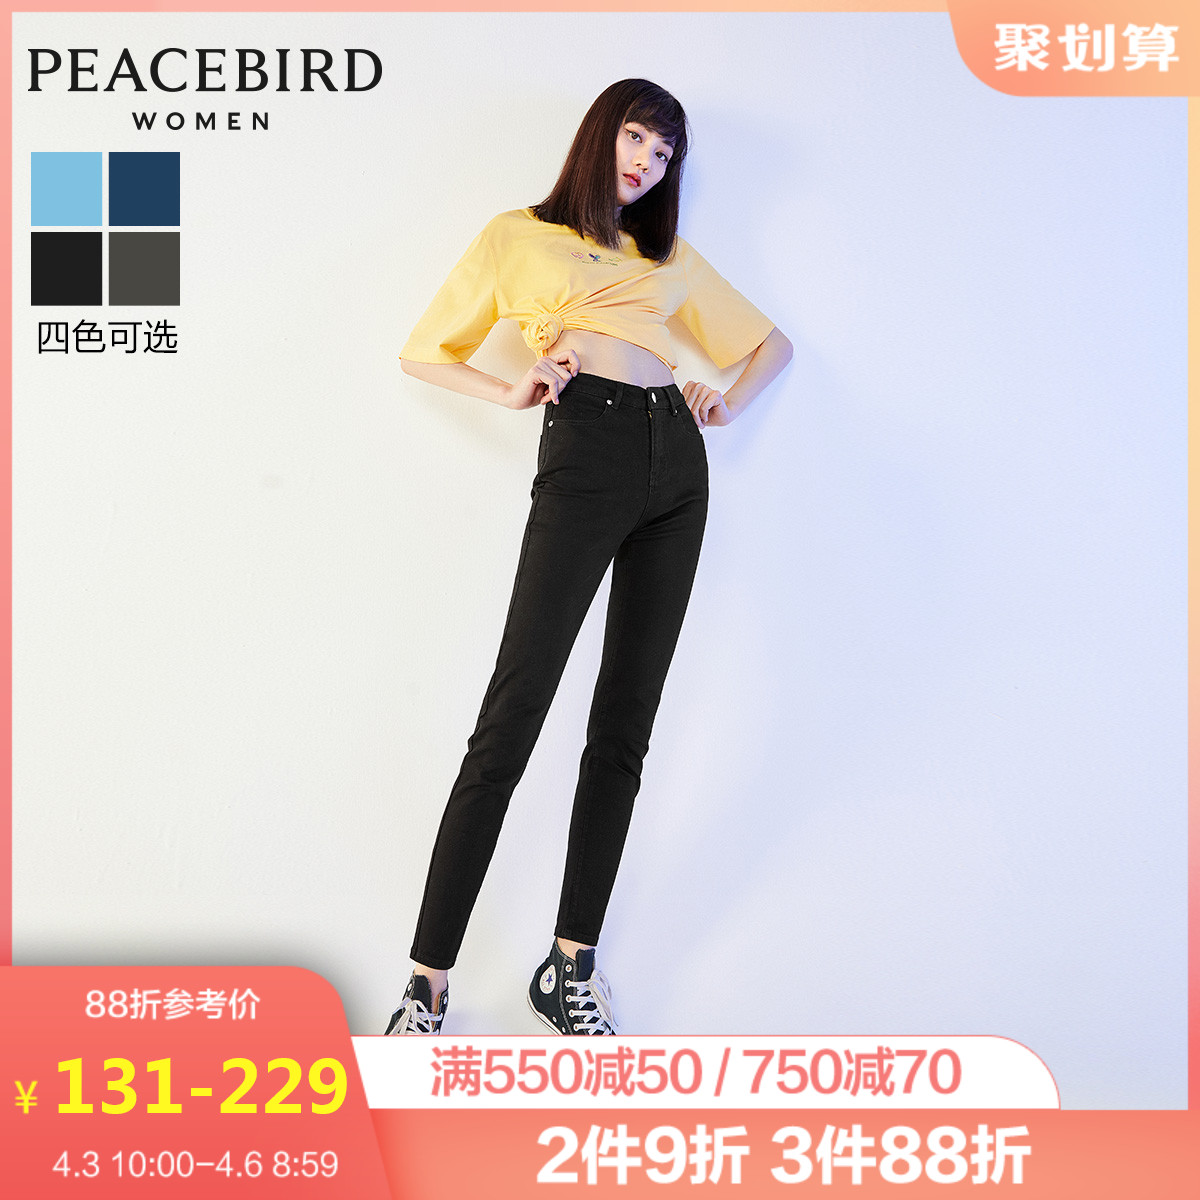 Taiping bird high waisted jeans women's spring dress 2020 New Black Slim Slim Leggings women's jeans